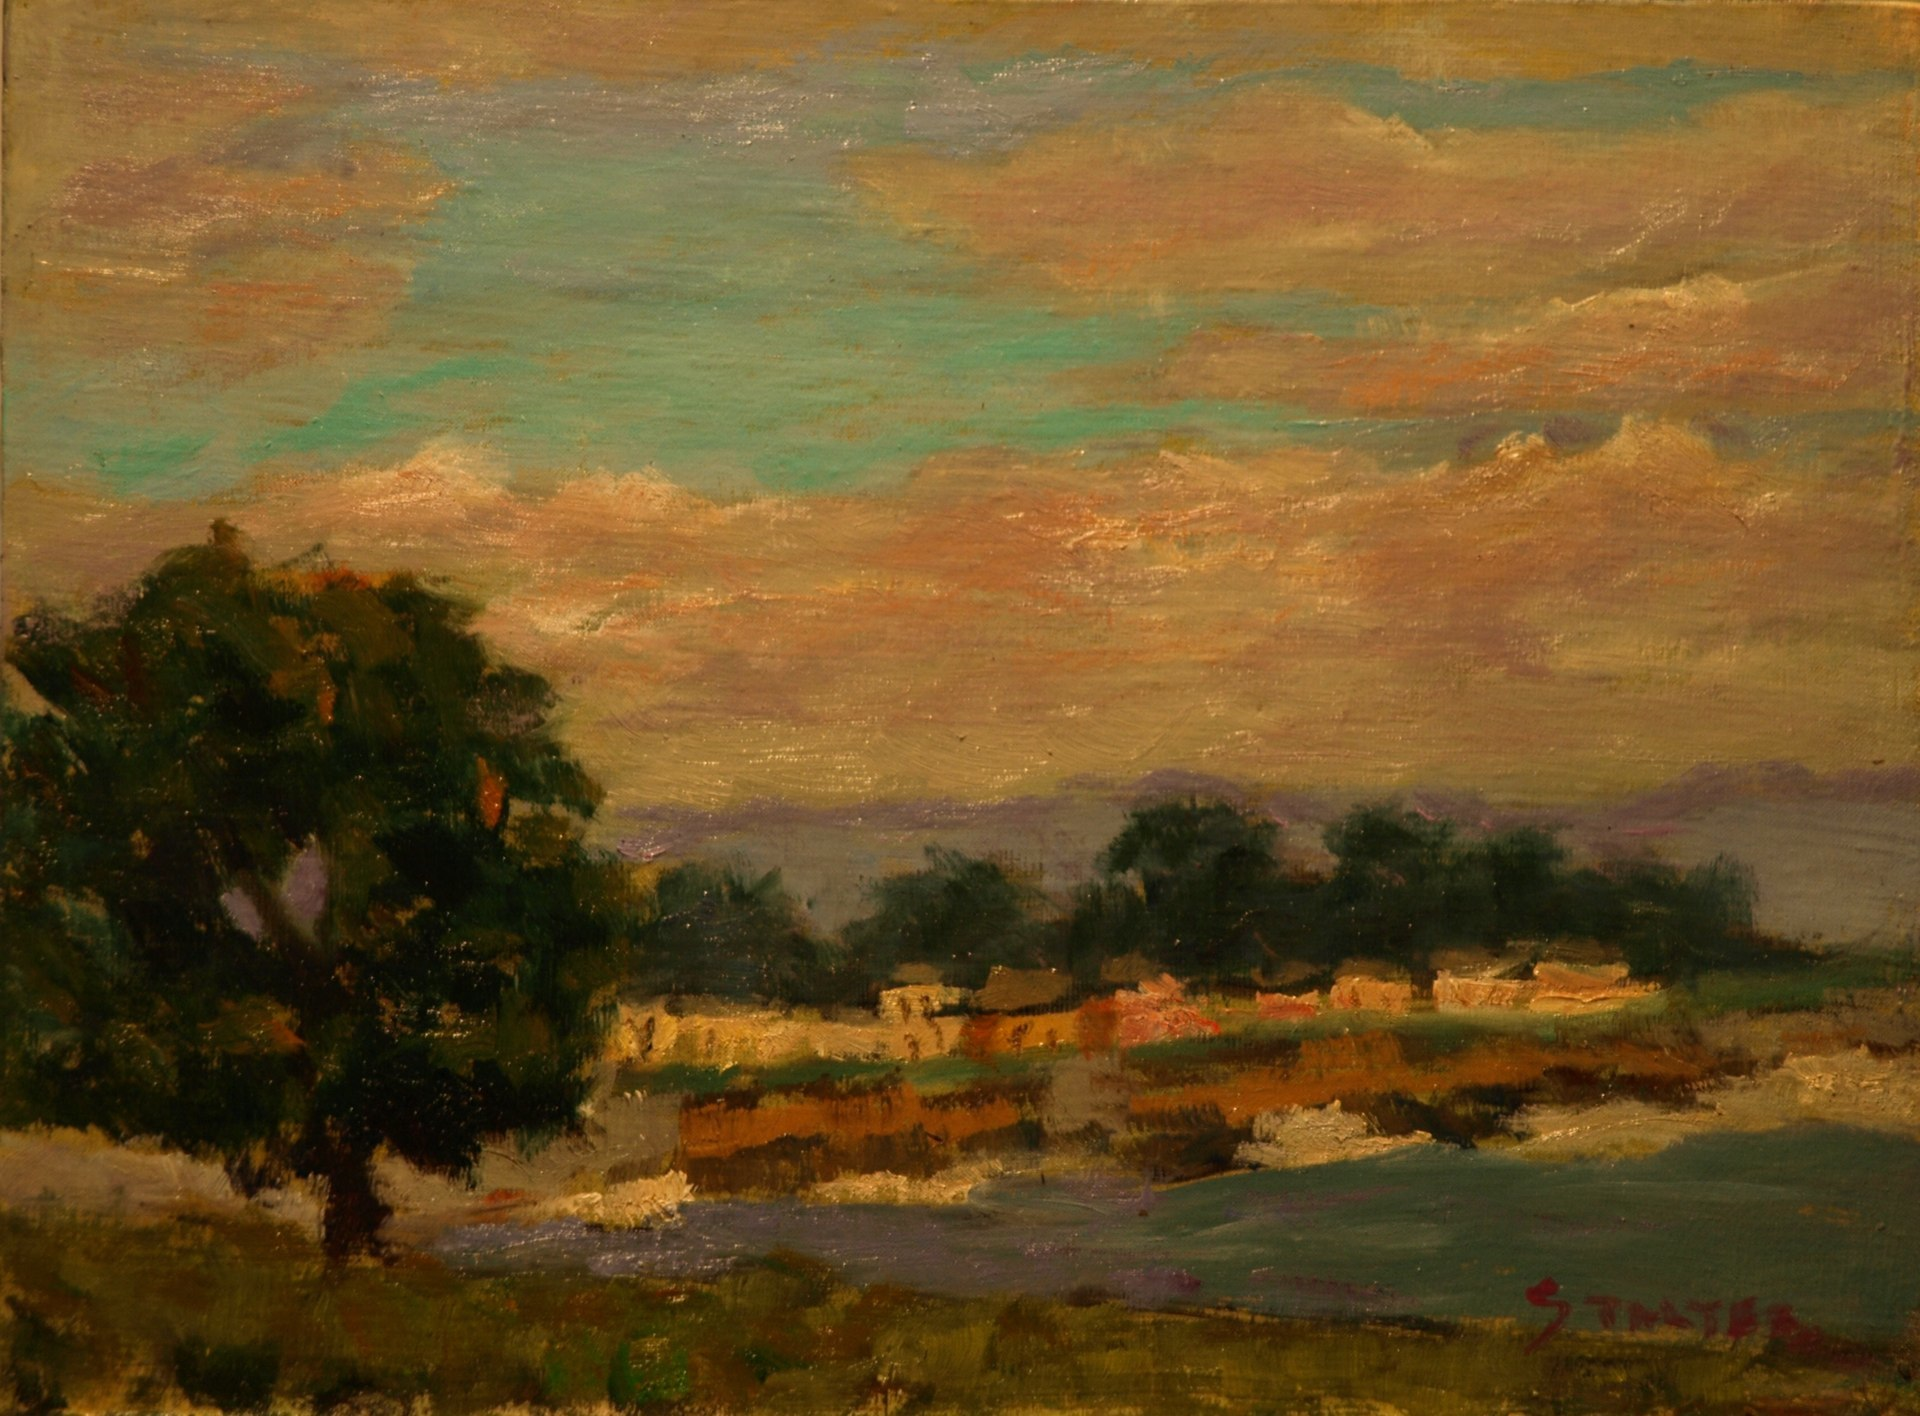 Late Afternoon Clouds, Oil on Panel, 9 x 12 Inches, by Richard Stalter, $225